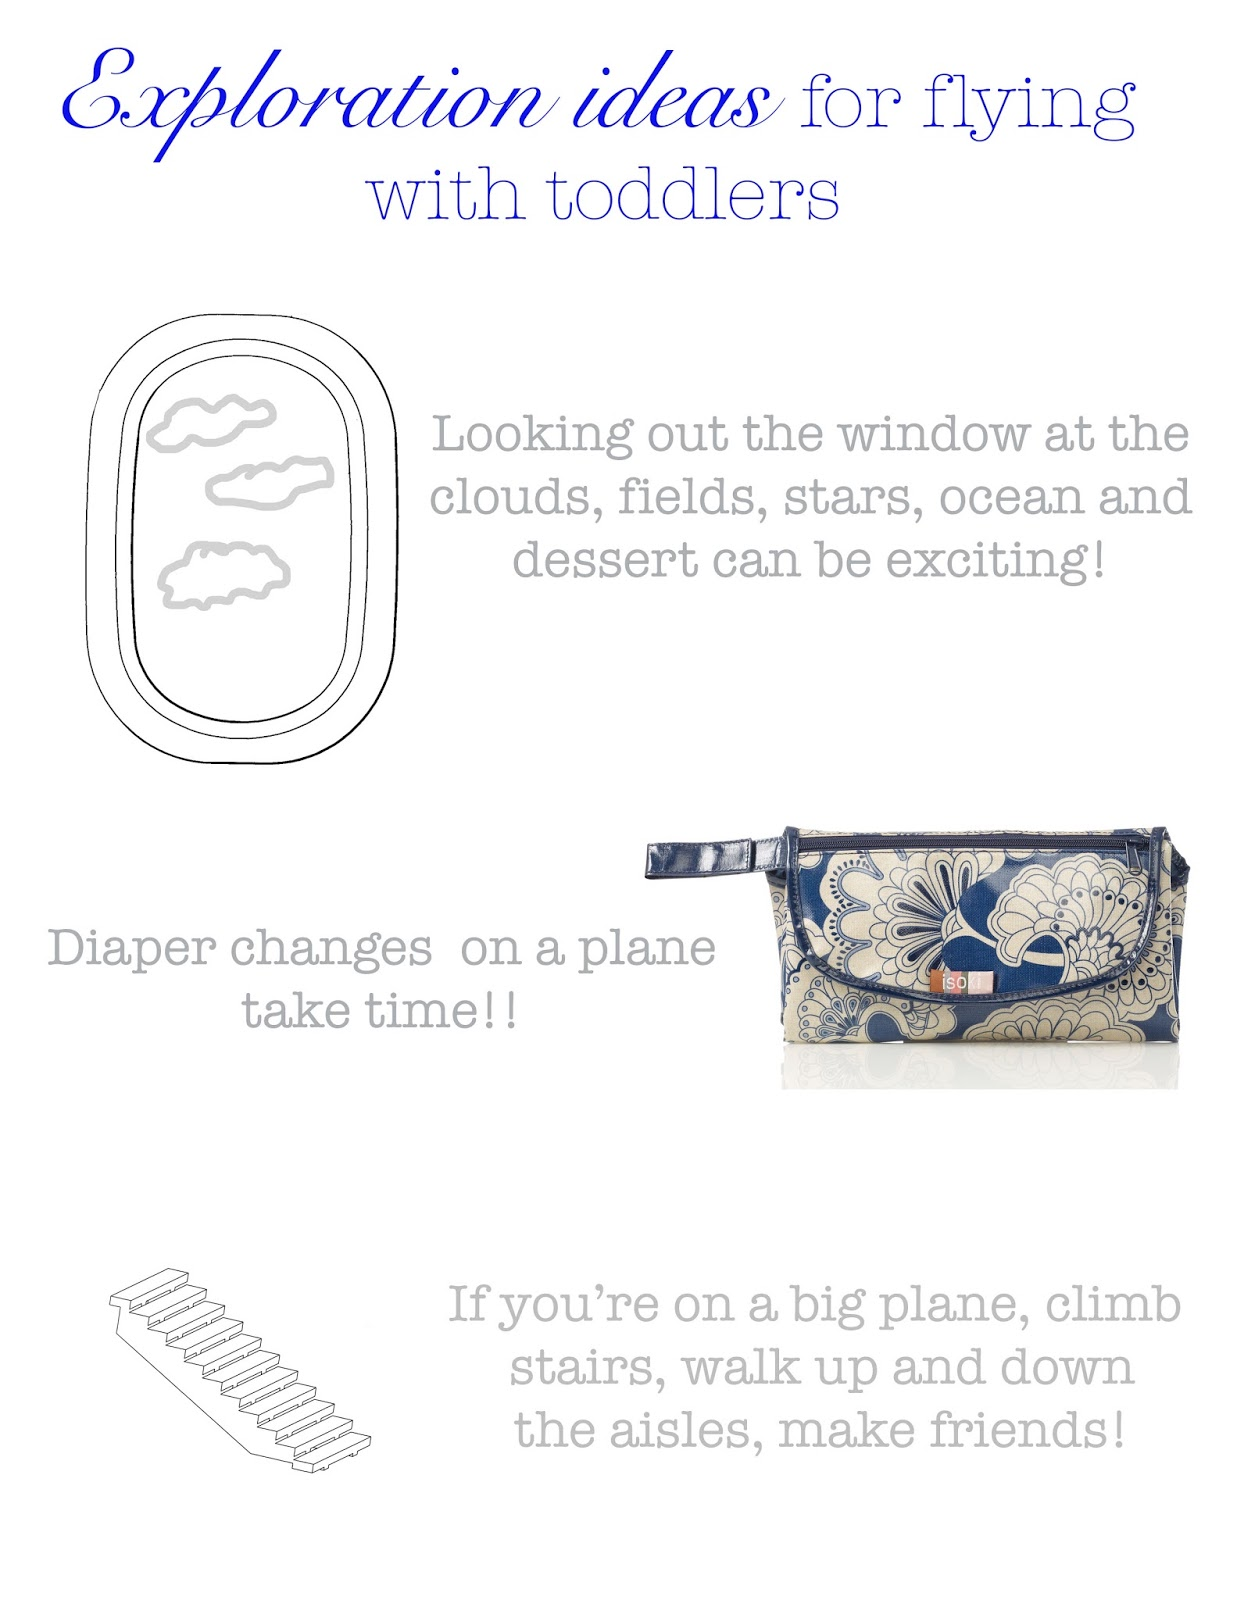 meg-made Golden exploration ideas for flying with toddlers